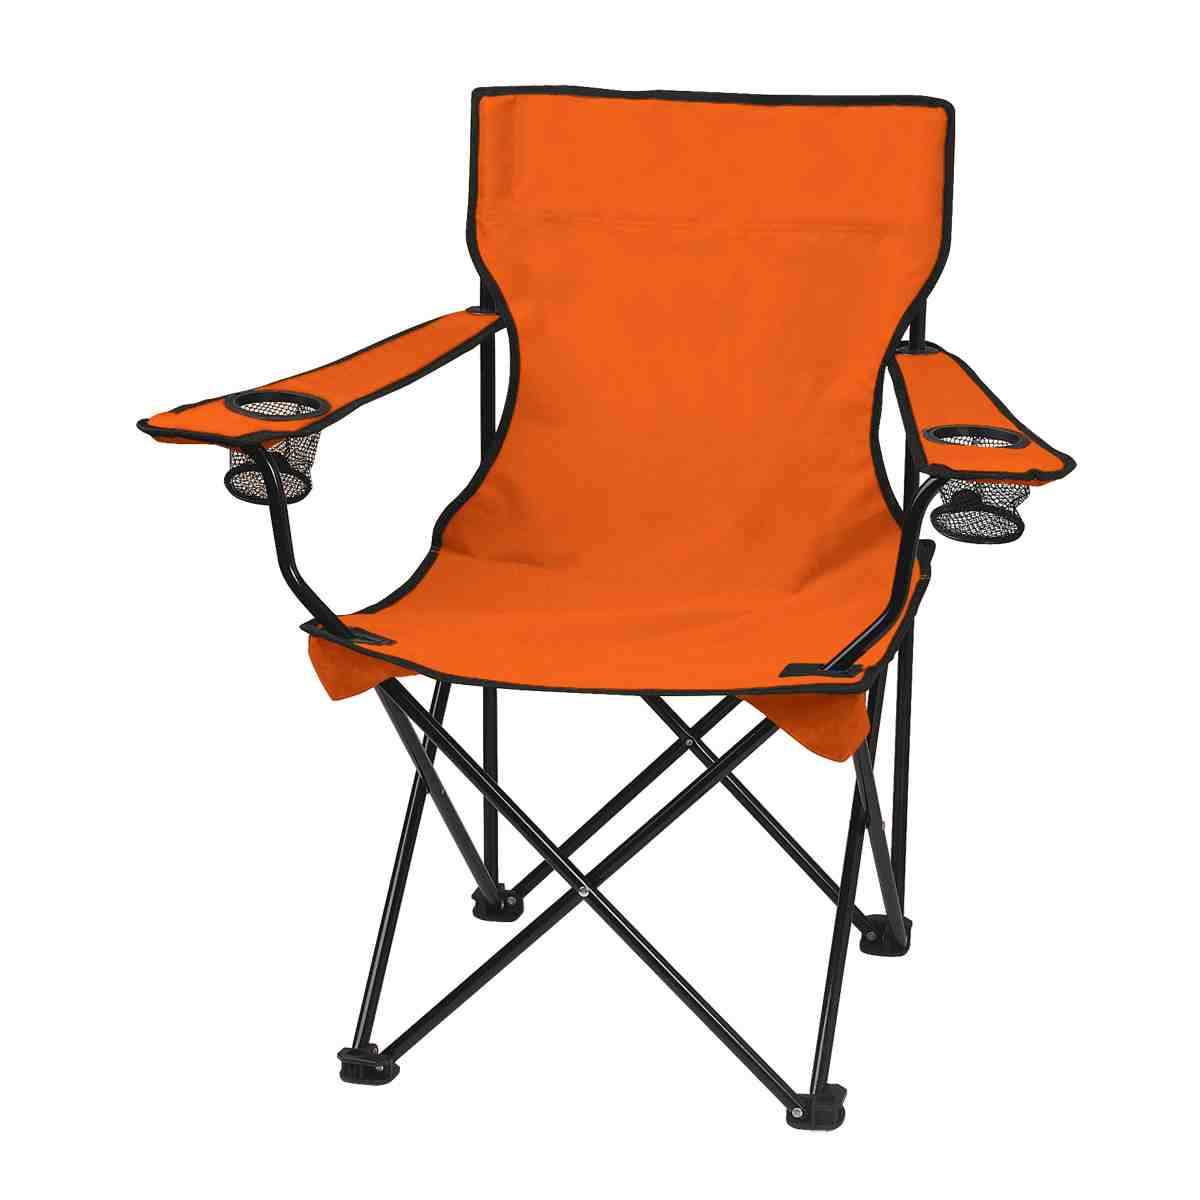 Outdoor Portable Chairs Outdoor Folding Chairs How To Buy The Best For All